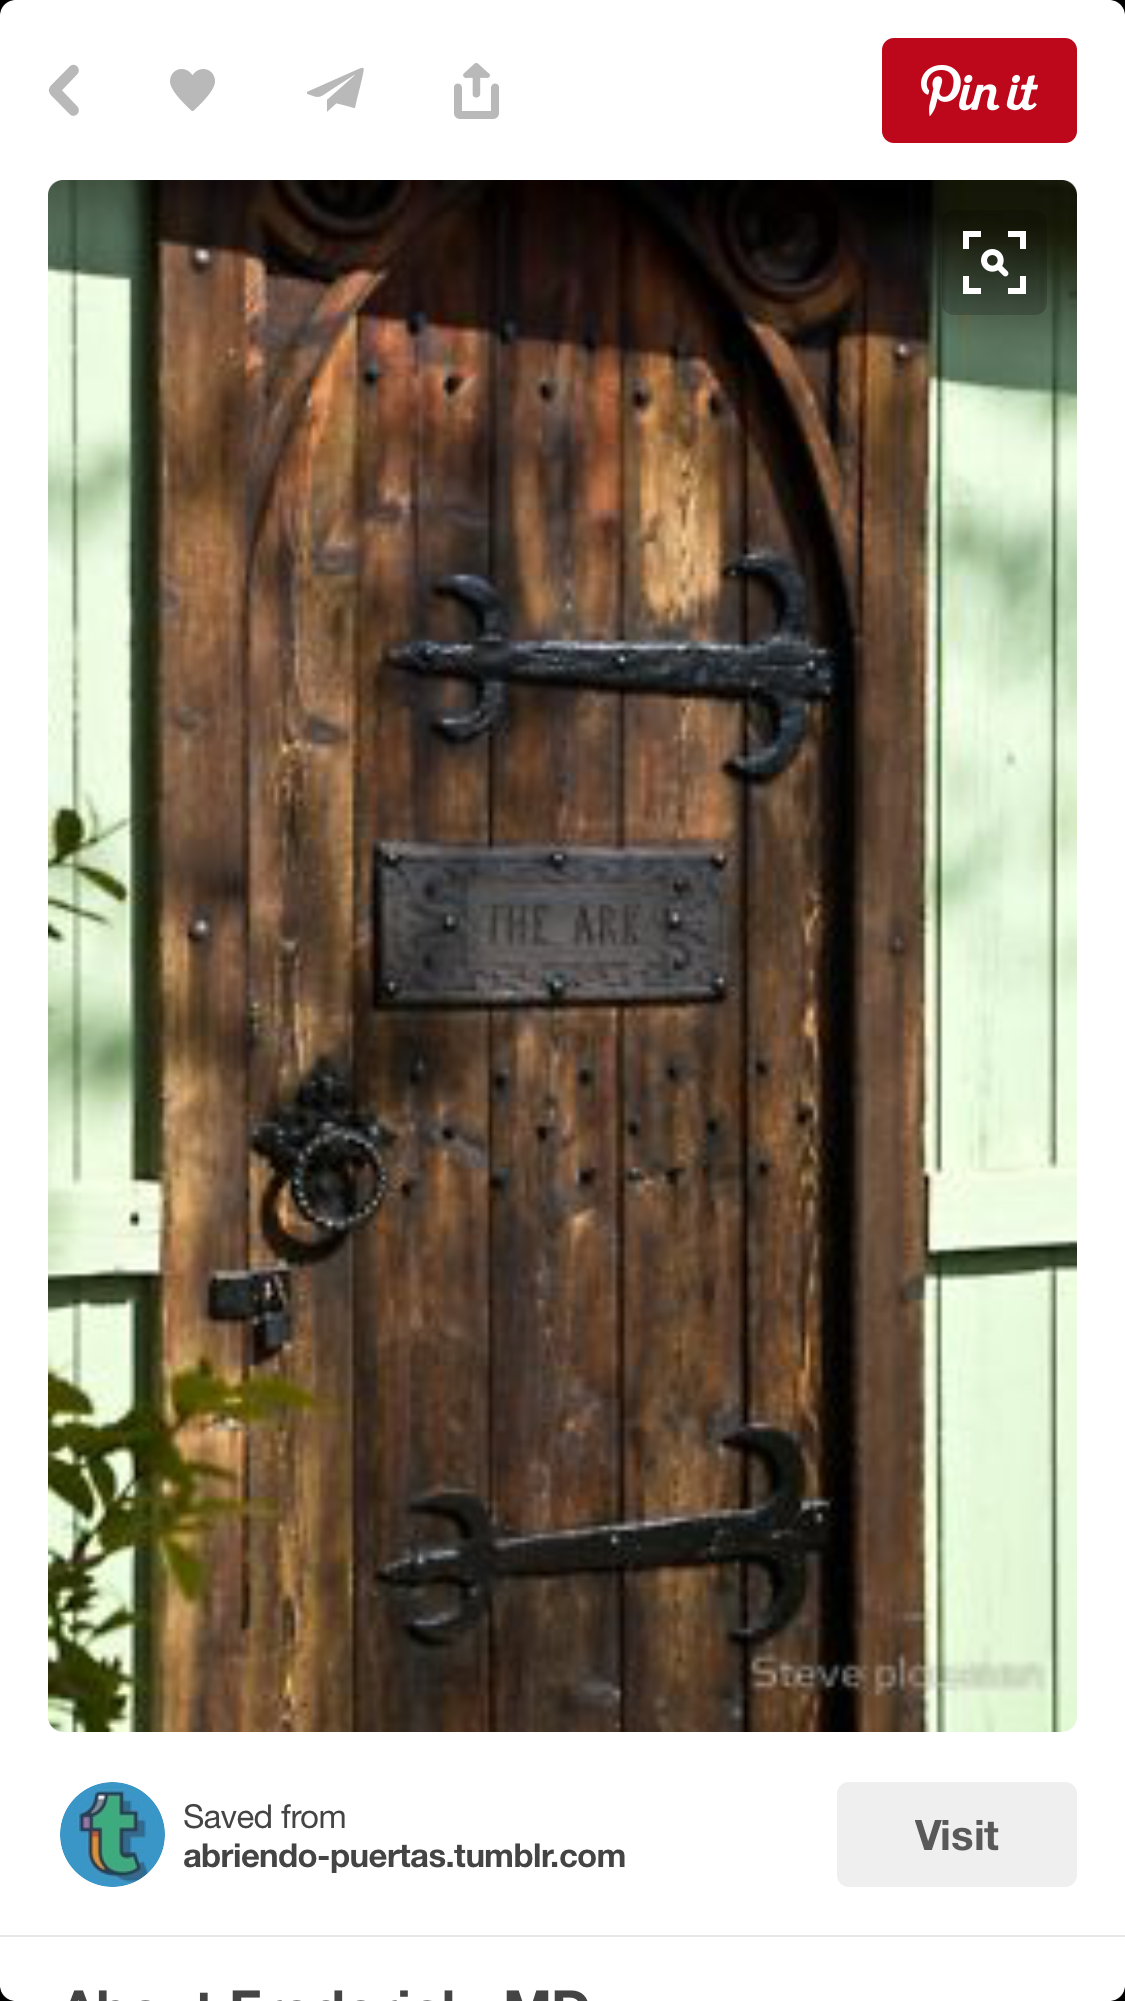 red are circle says wood tech woodworking more traditional rustic network product components than cabinet structurally barn assembly board its stronger with sound doors in hardware sawn new door types and available